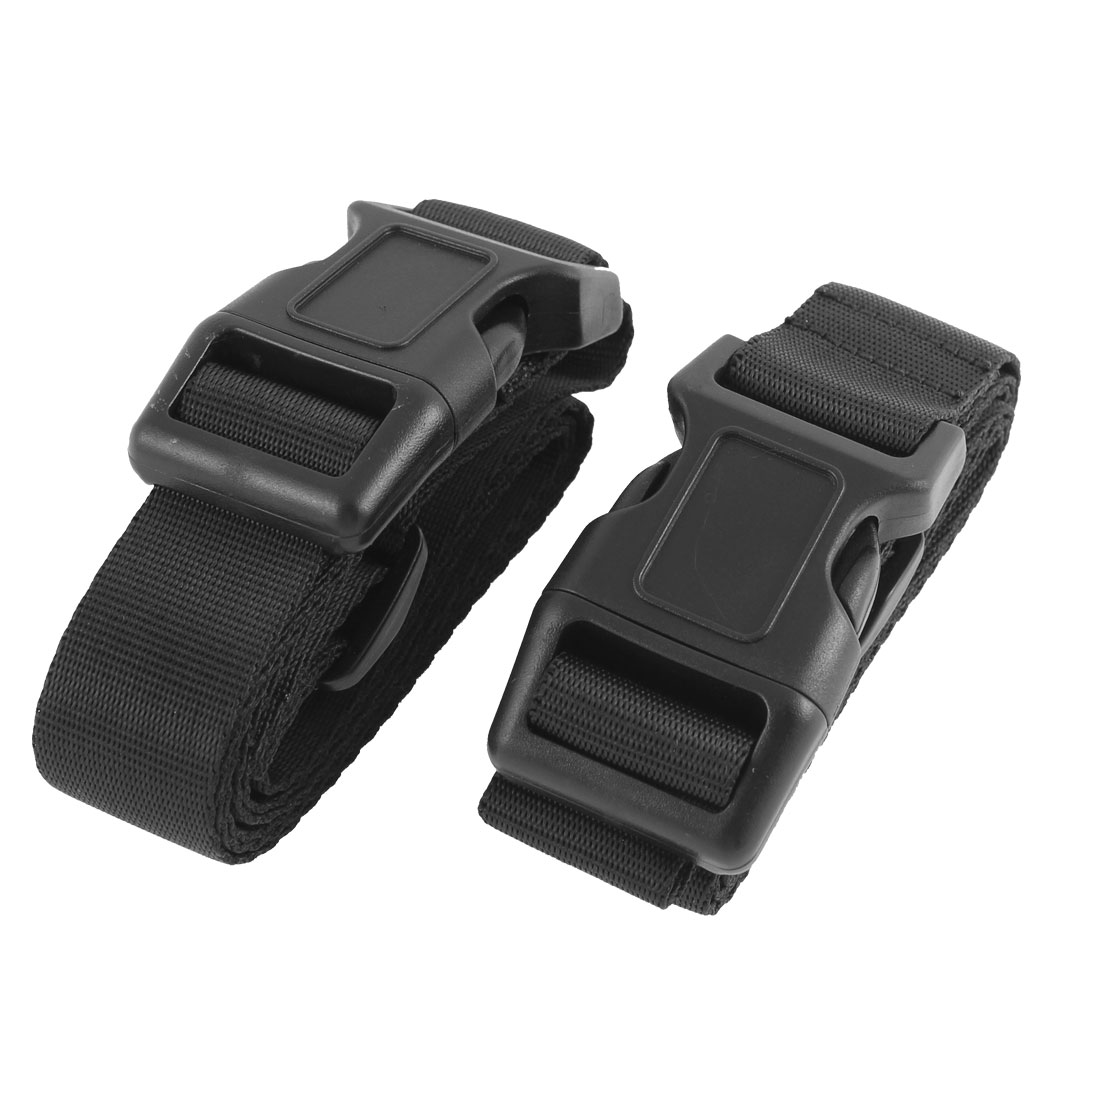 Polypropylene Adjustable Travel Luggage Suitcase Backpack Belt Tie Down Strap Black 1m 2 Pcs